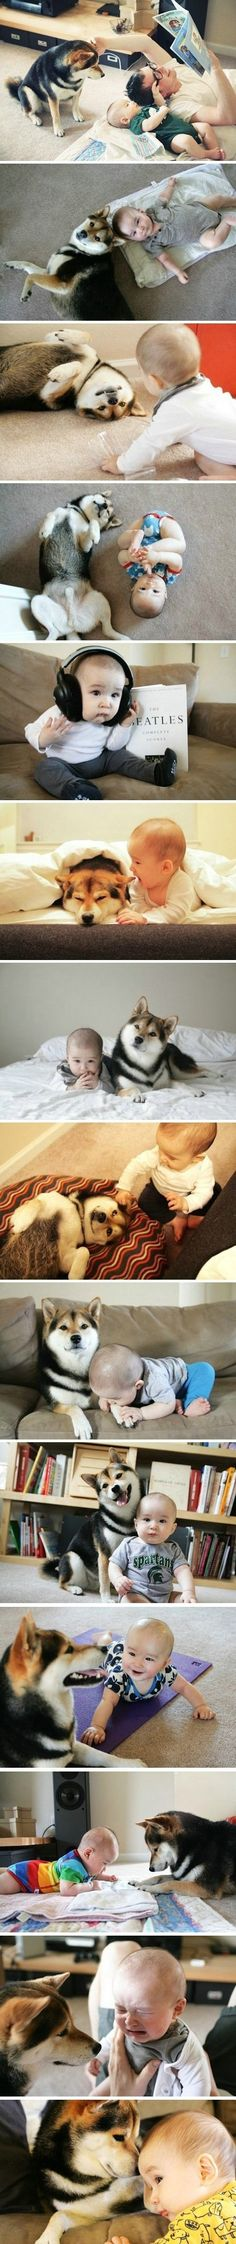 anim, friends, shiba inu, pet, future babies